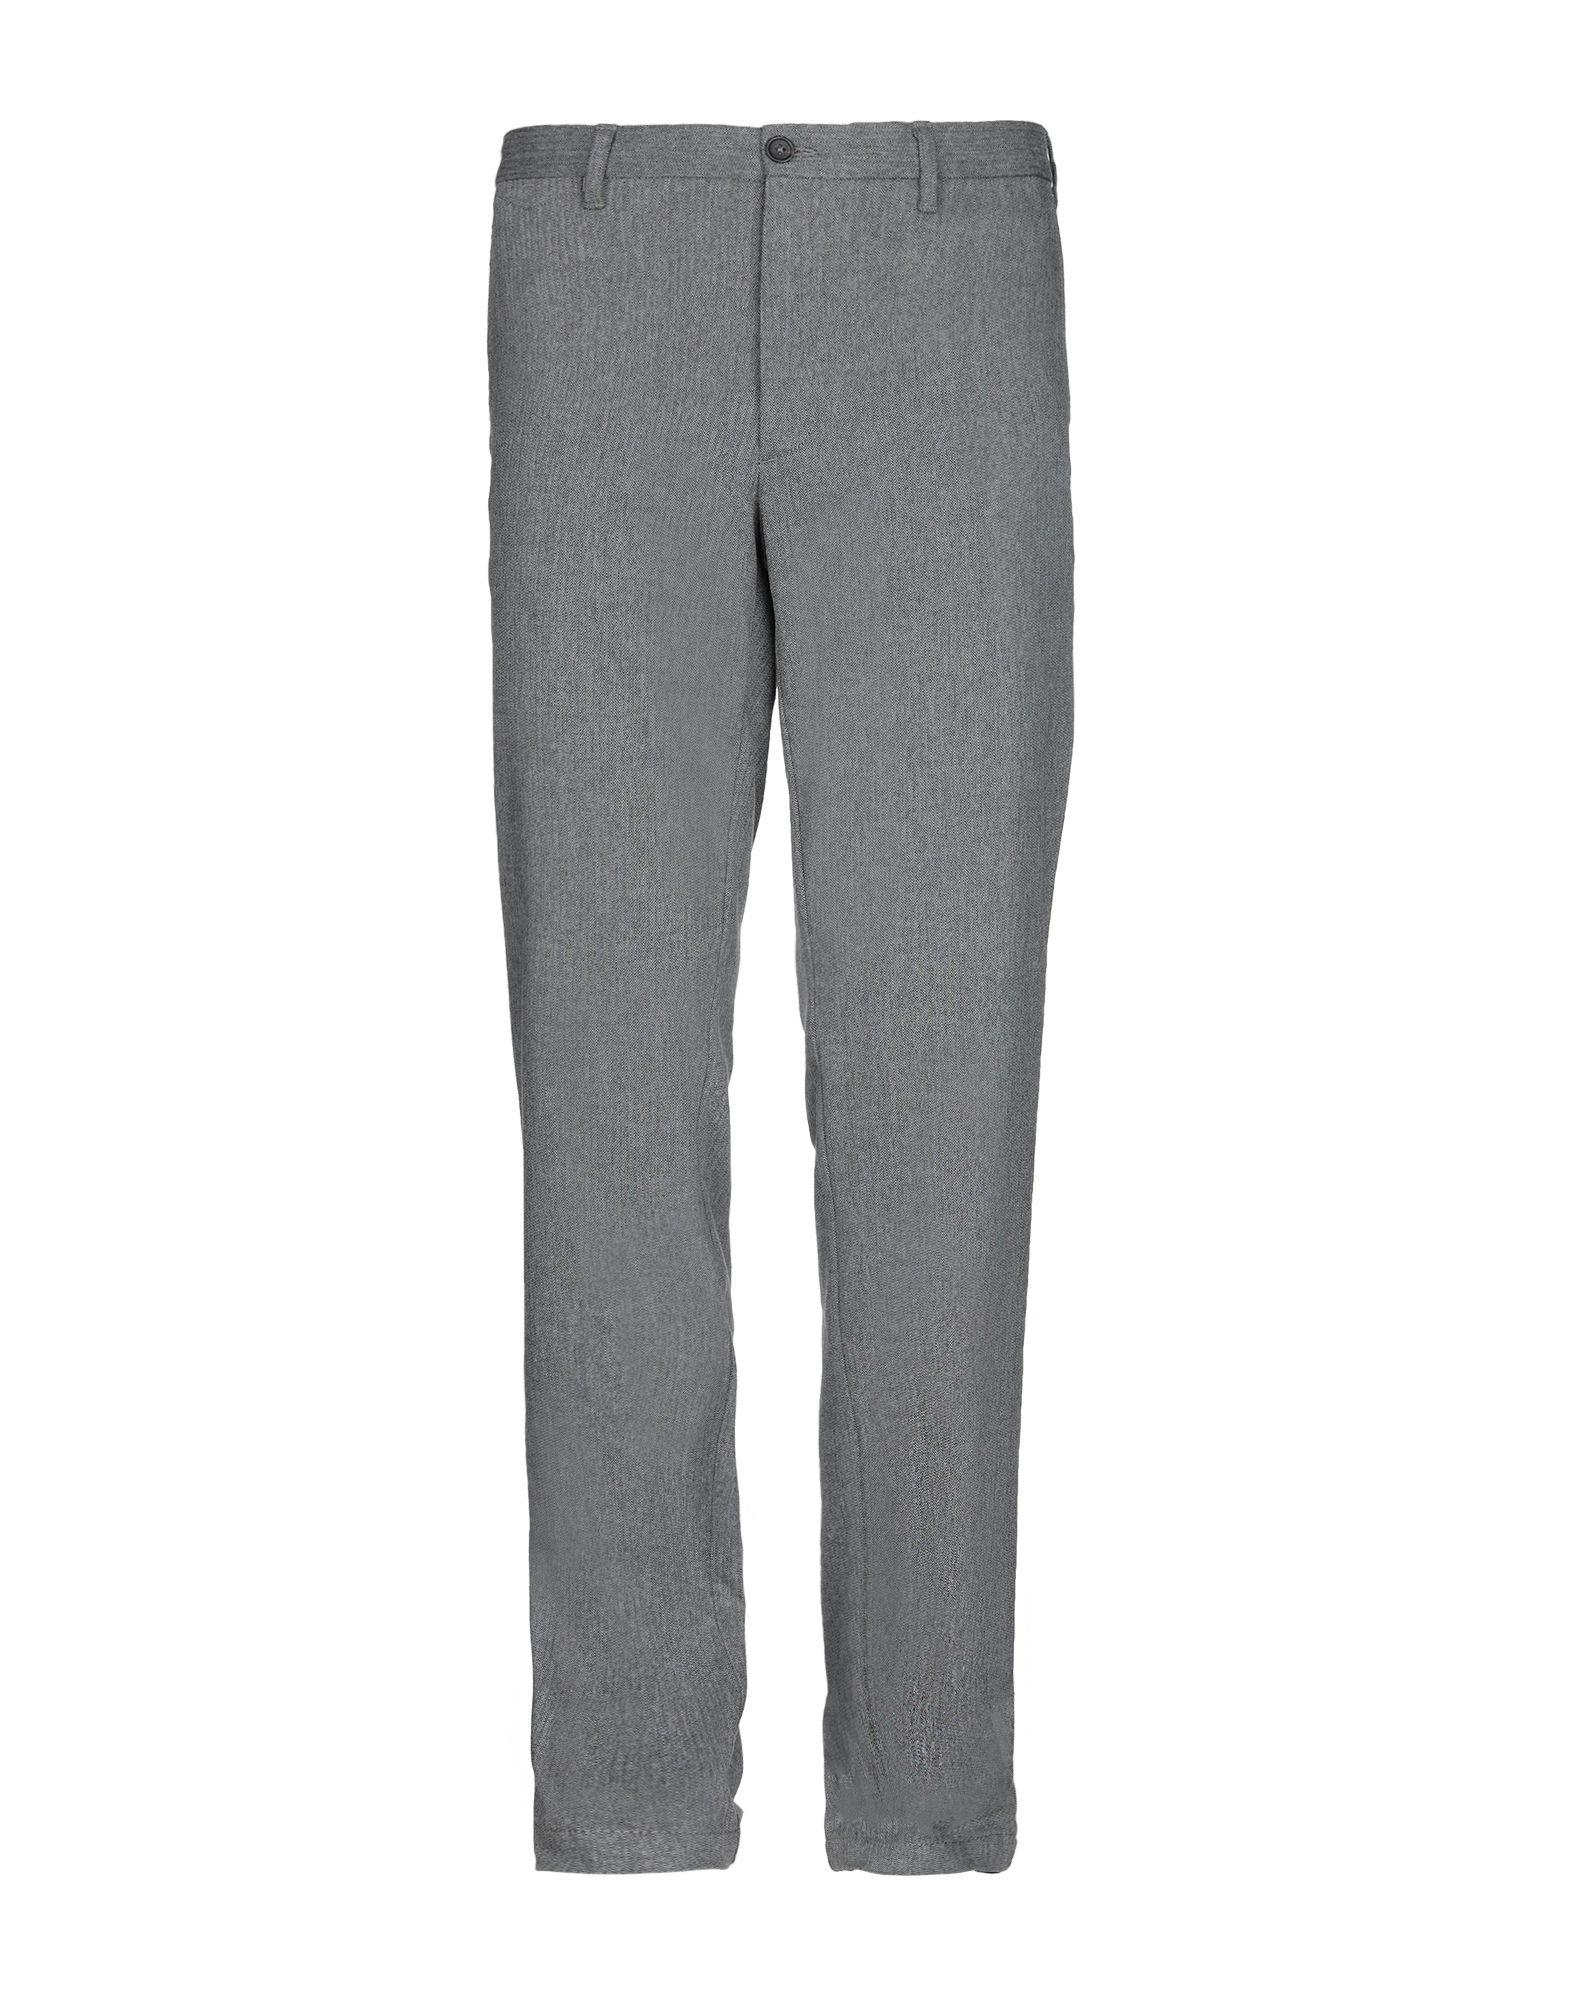 Lyst - Henry Cotton S Casual Pants in Gray for Men 96711594605